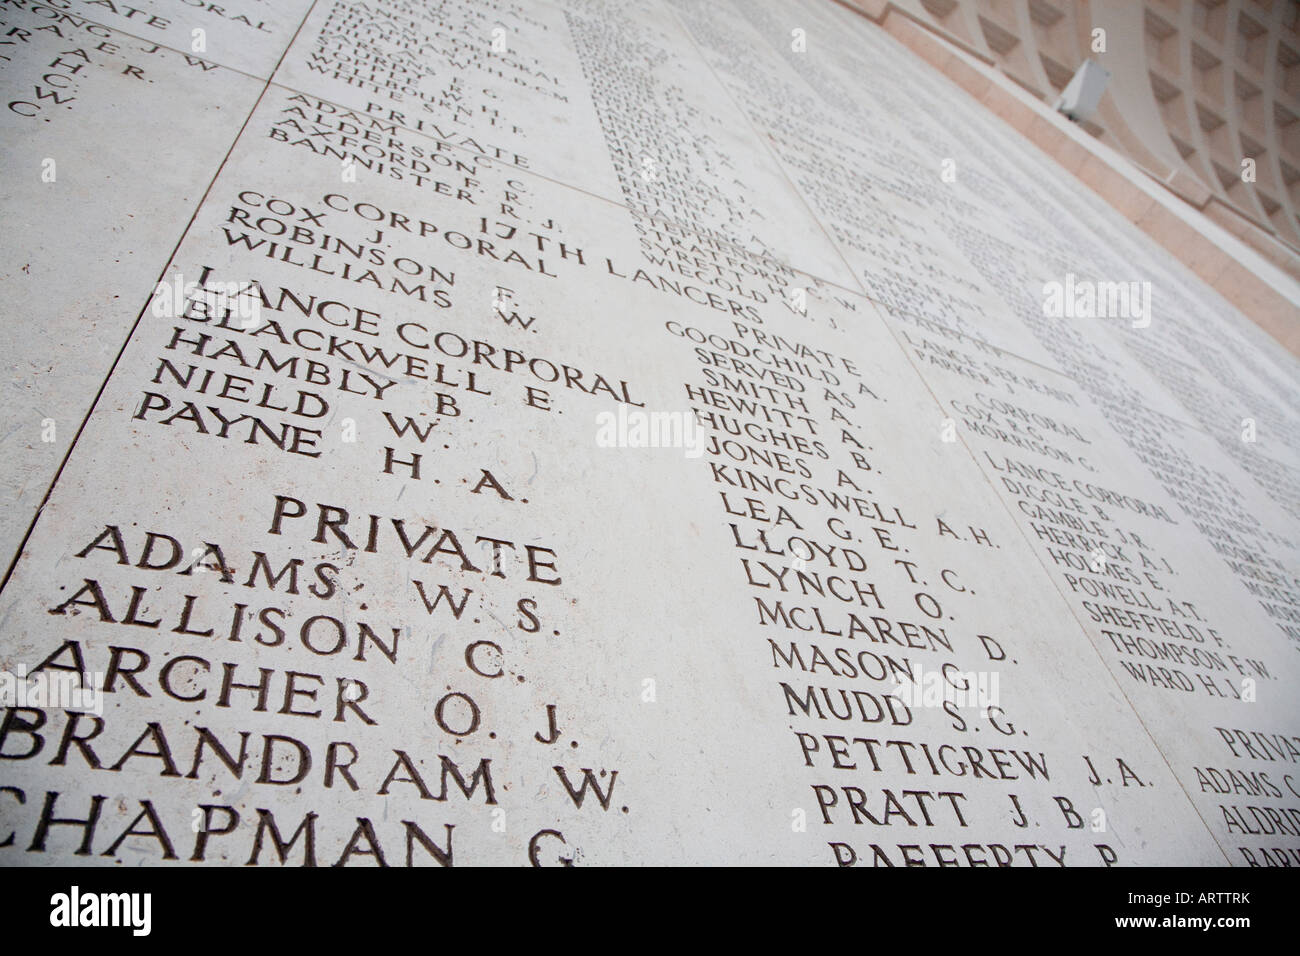 Names of war dead inscribed in the Menin Gate Ypres Belgium - Stock Image